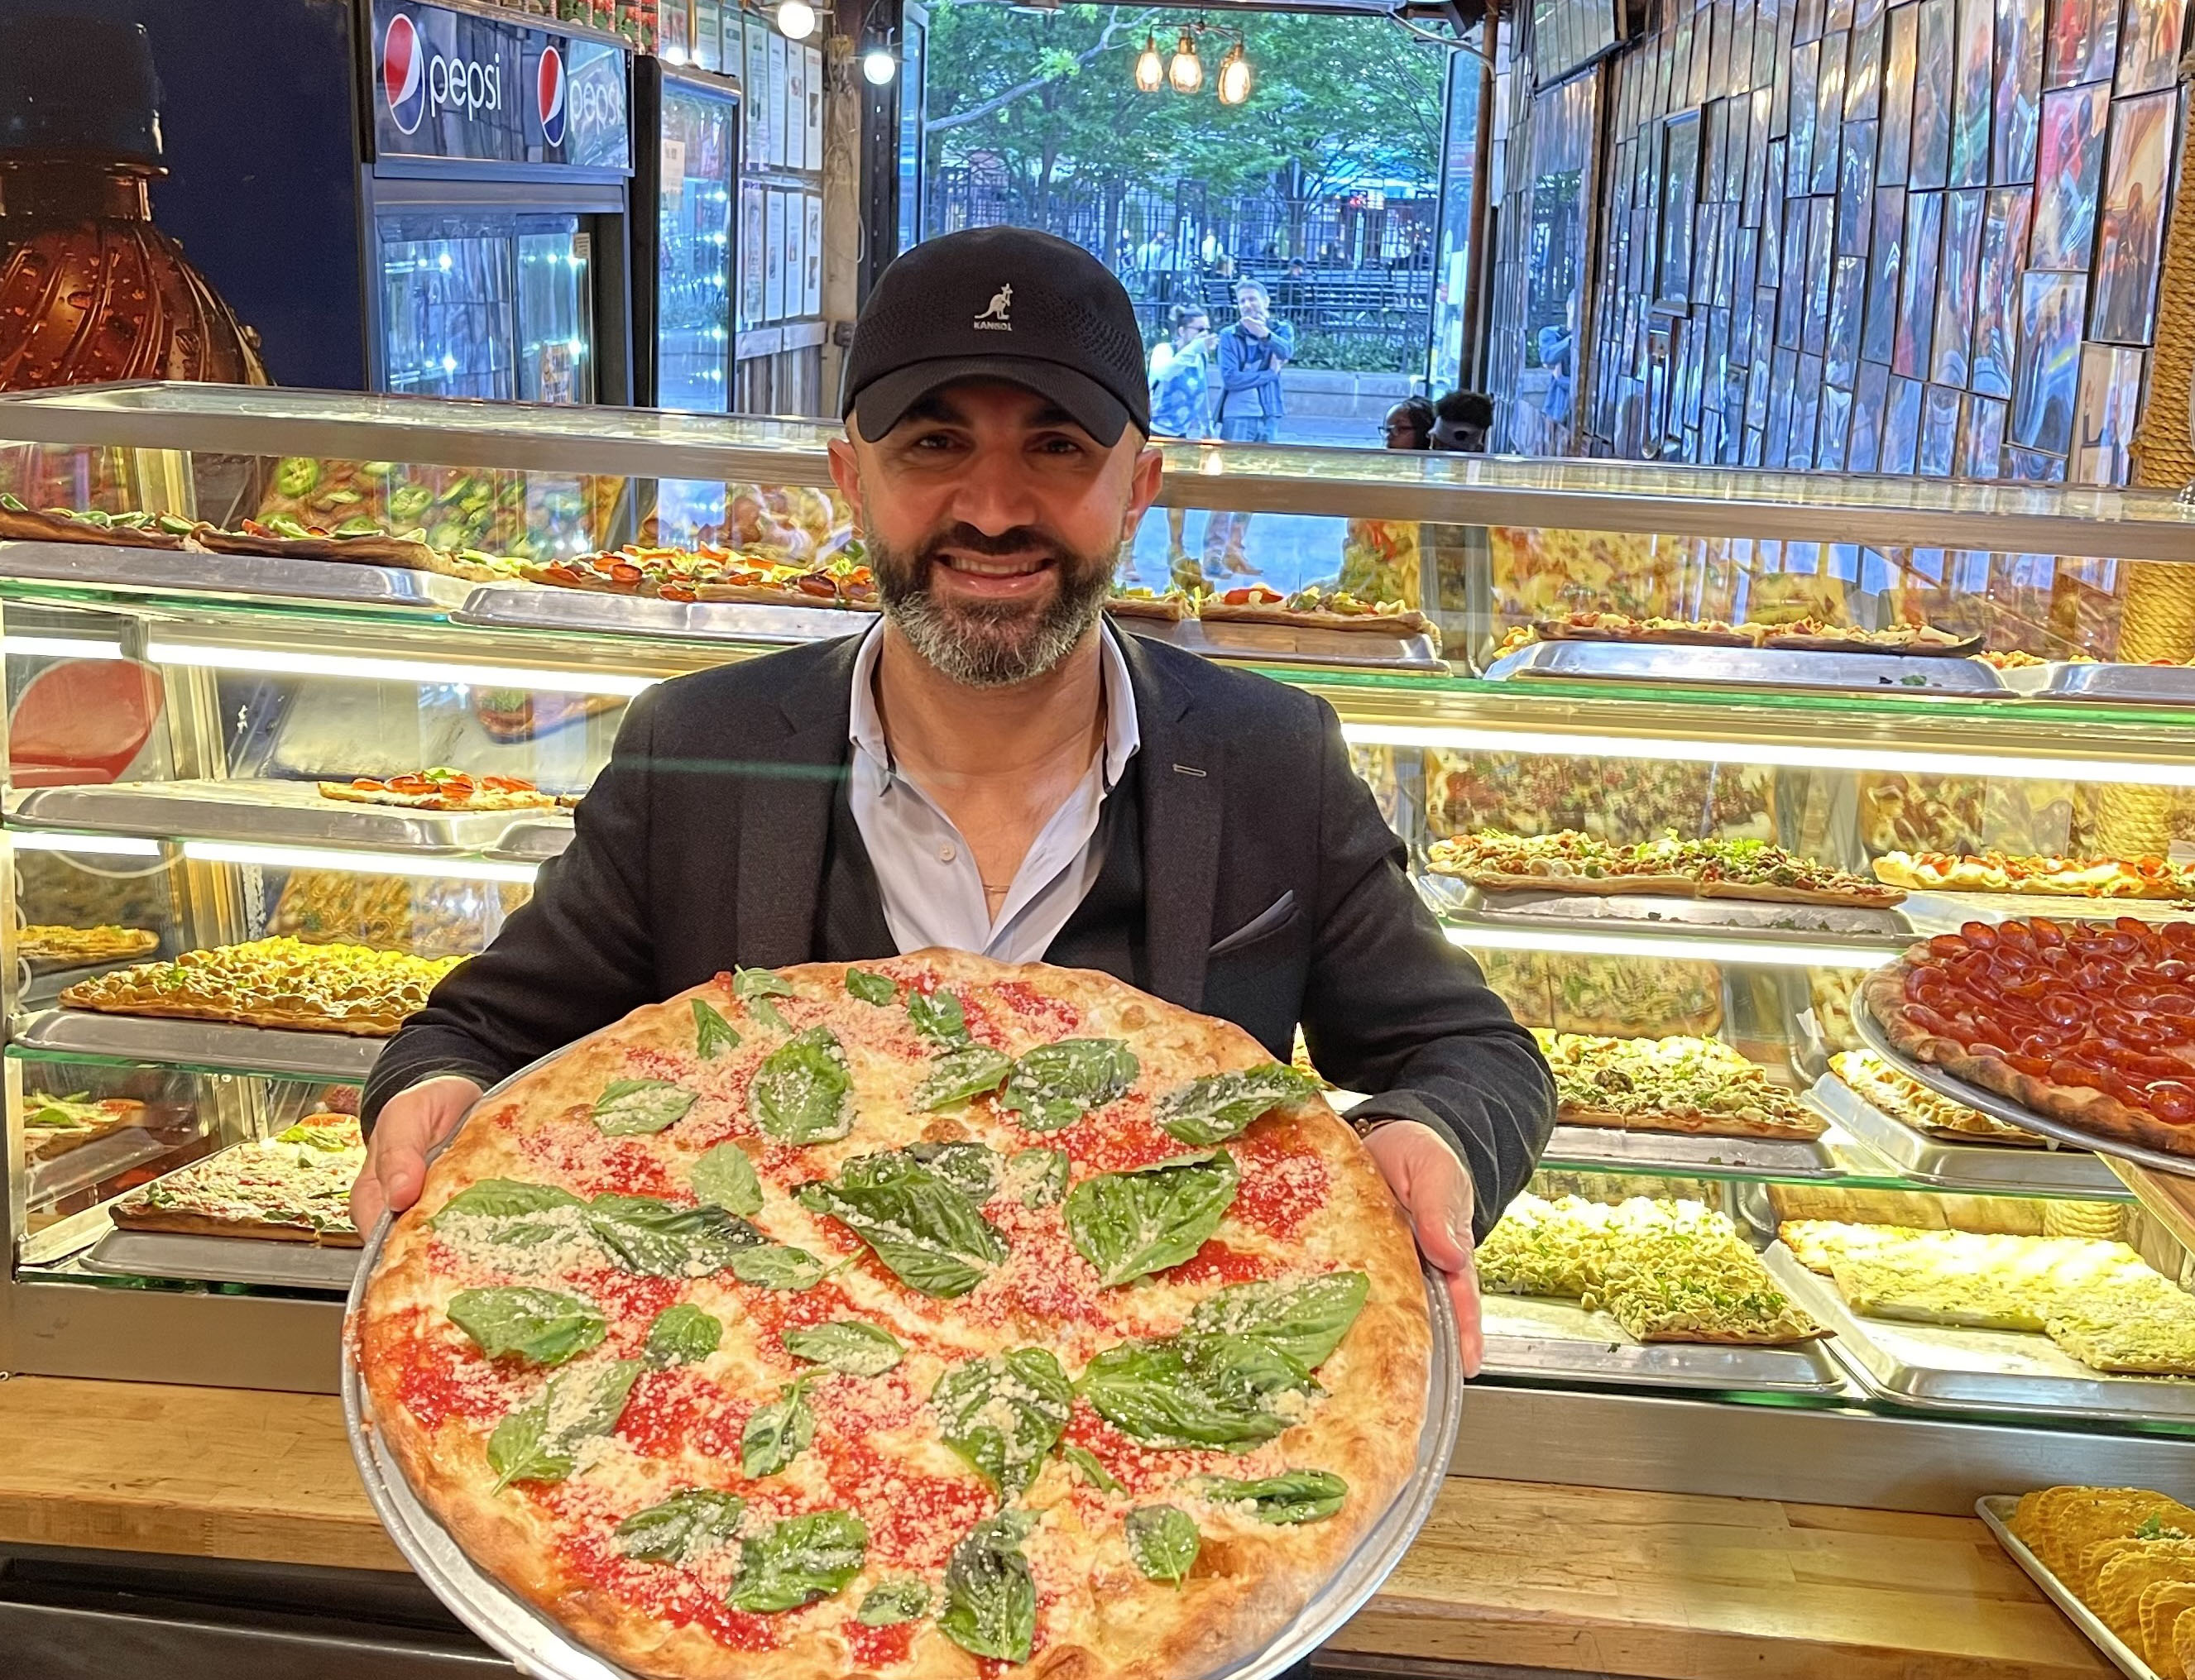 Top 5 Best Pizza Places in New York City